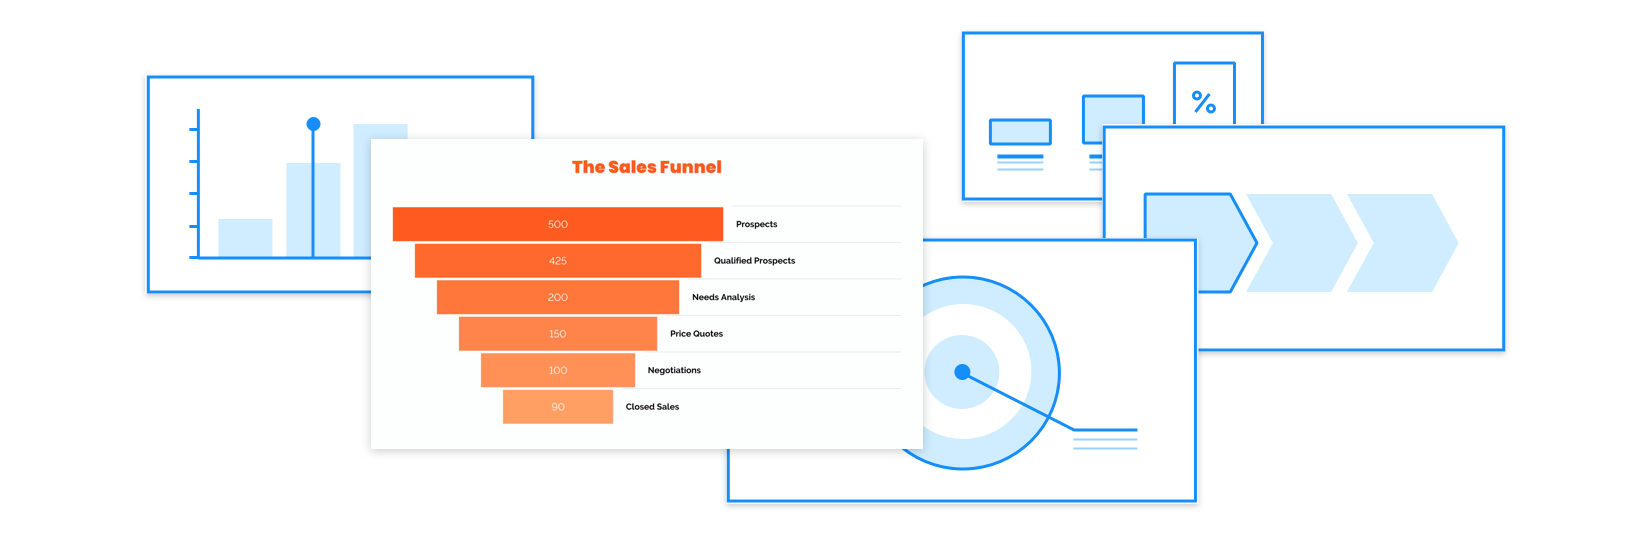 5 Charts To Use For Your Next Sales Funnel